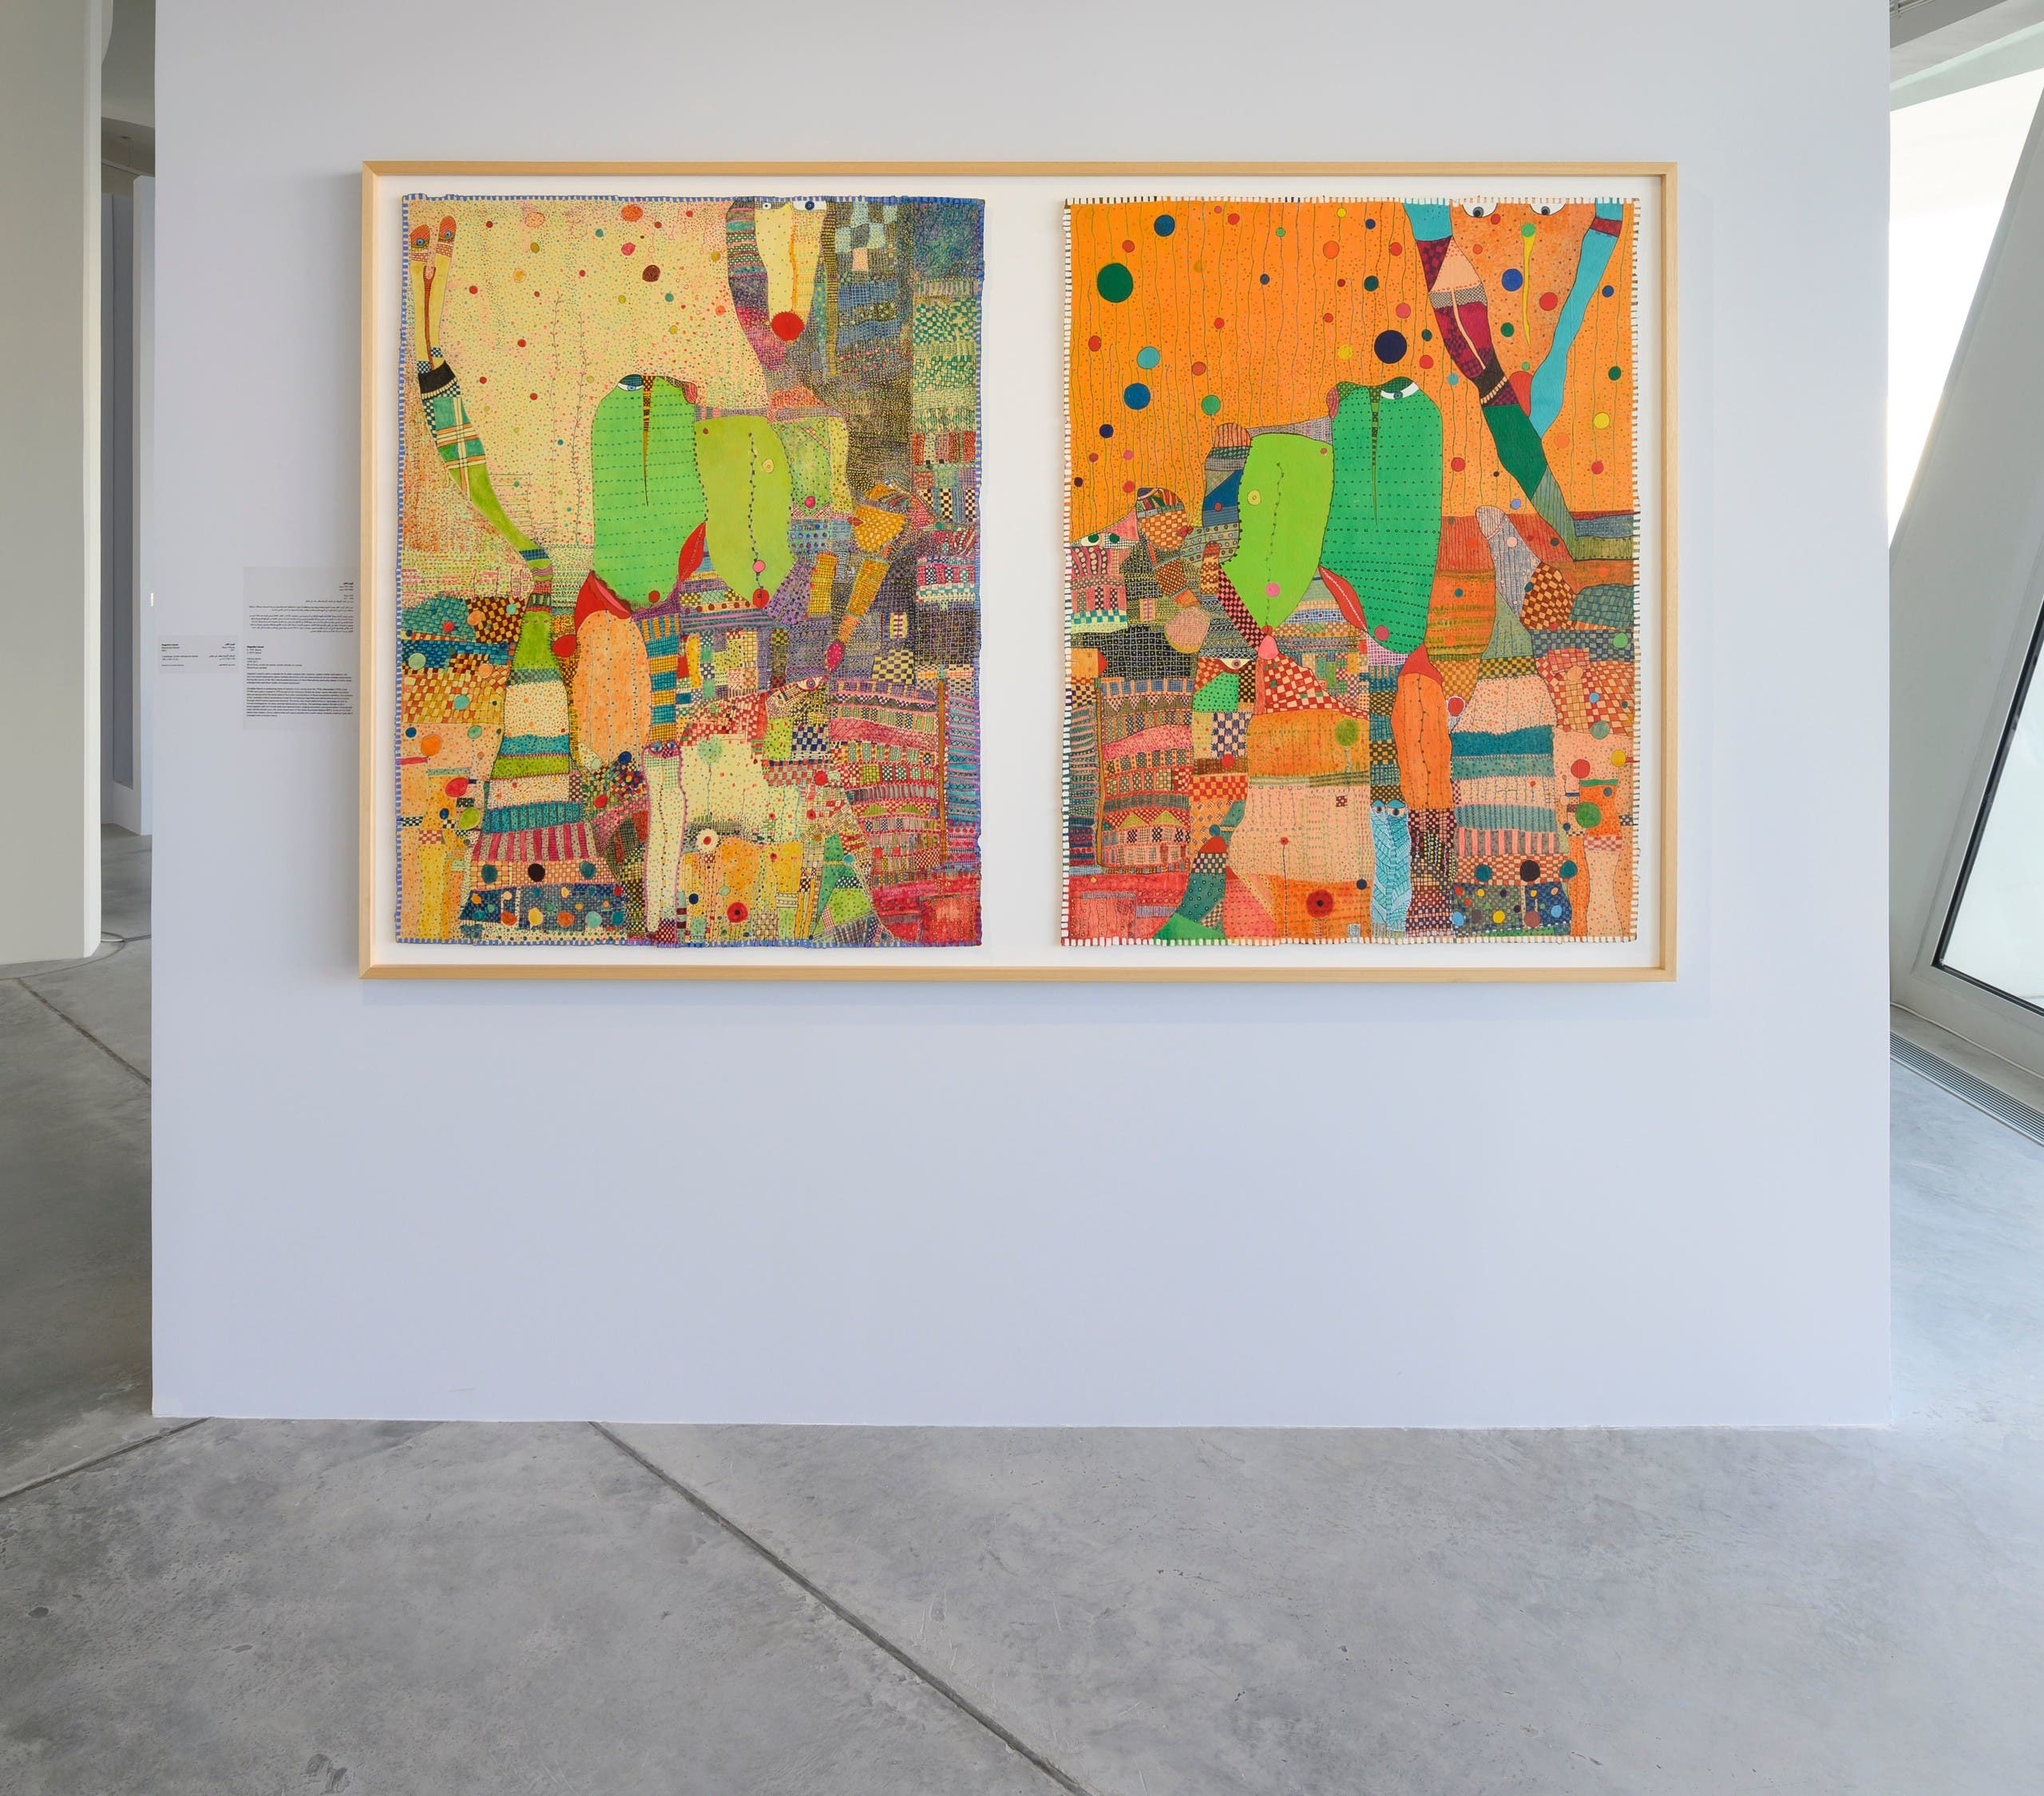 Huguette Caland, Rossinante Diptych, 2011. 2 paintings: acrylic and pen on canvas; 100 x 130 x 2 cm. Installation view: Unsettled Objects, Sharjah Art Foundation, 2021. (Photo: Sharjah Art Foundation)